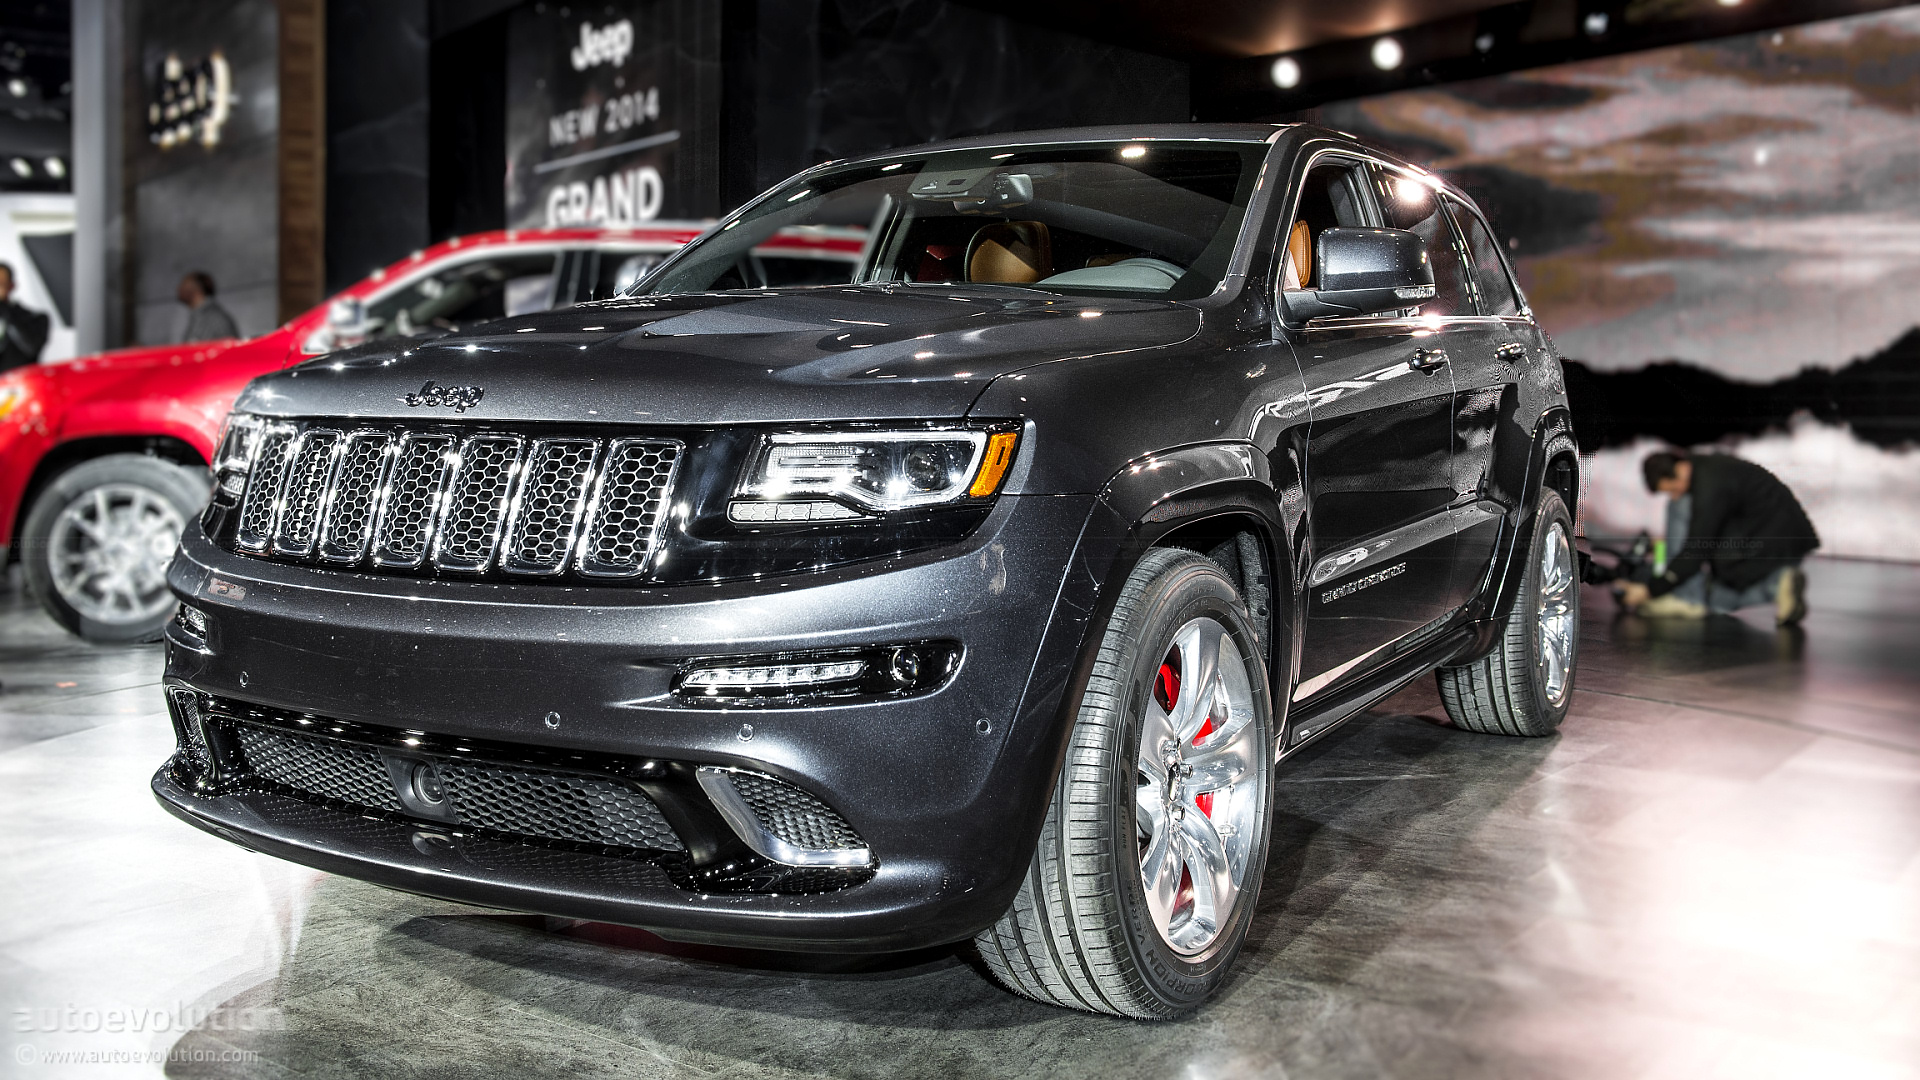 2013 naias jeep grand cherokee srt8 live photos autoevolution. Black Bedroom Furniture Sets. Home Design Ideas